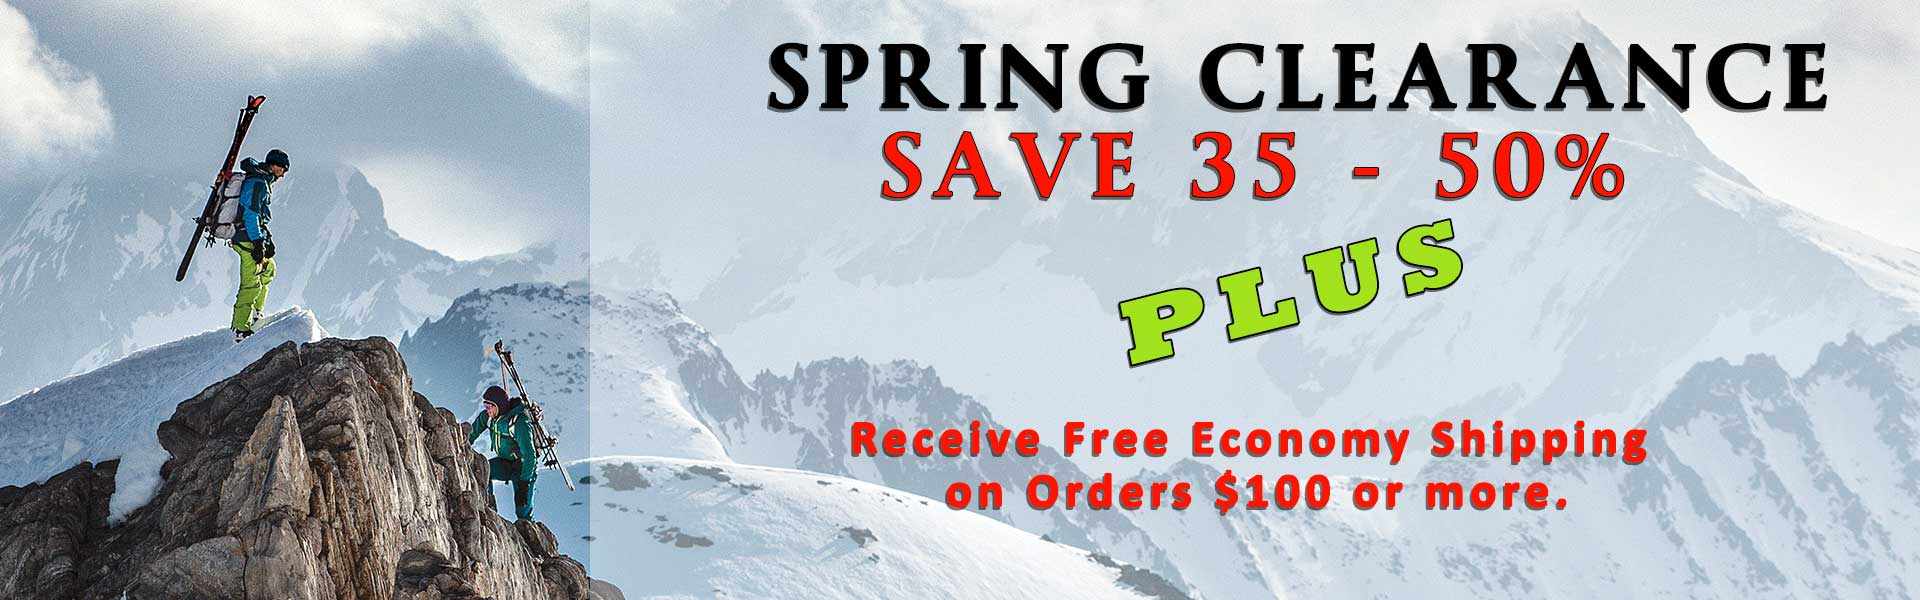 Huge savings on all winter ski jackets and pants